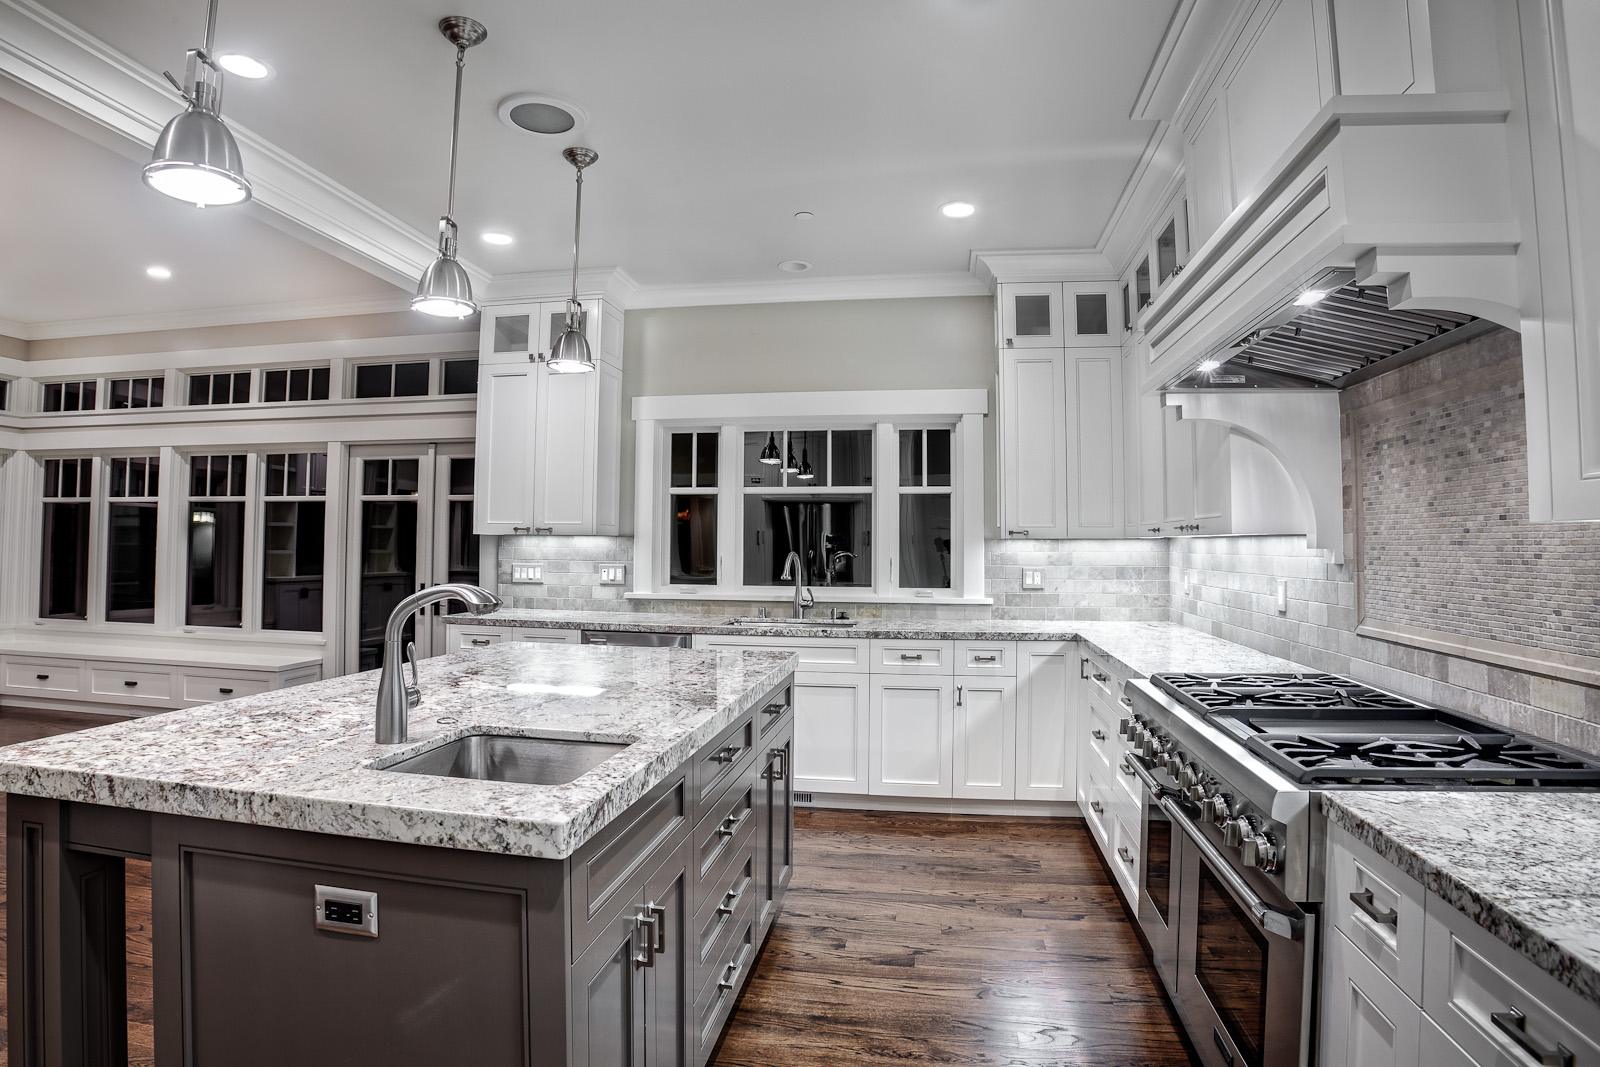 Custom-Cabinets-Kitchen-Island-Granite-Countertop-White-Finish-for-Vintage-Kitch